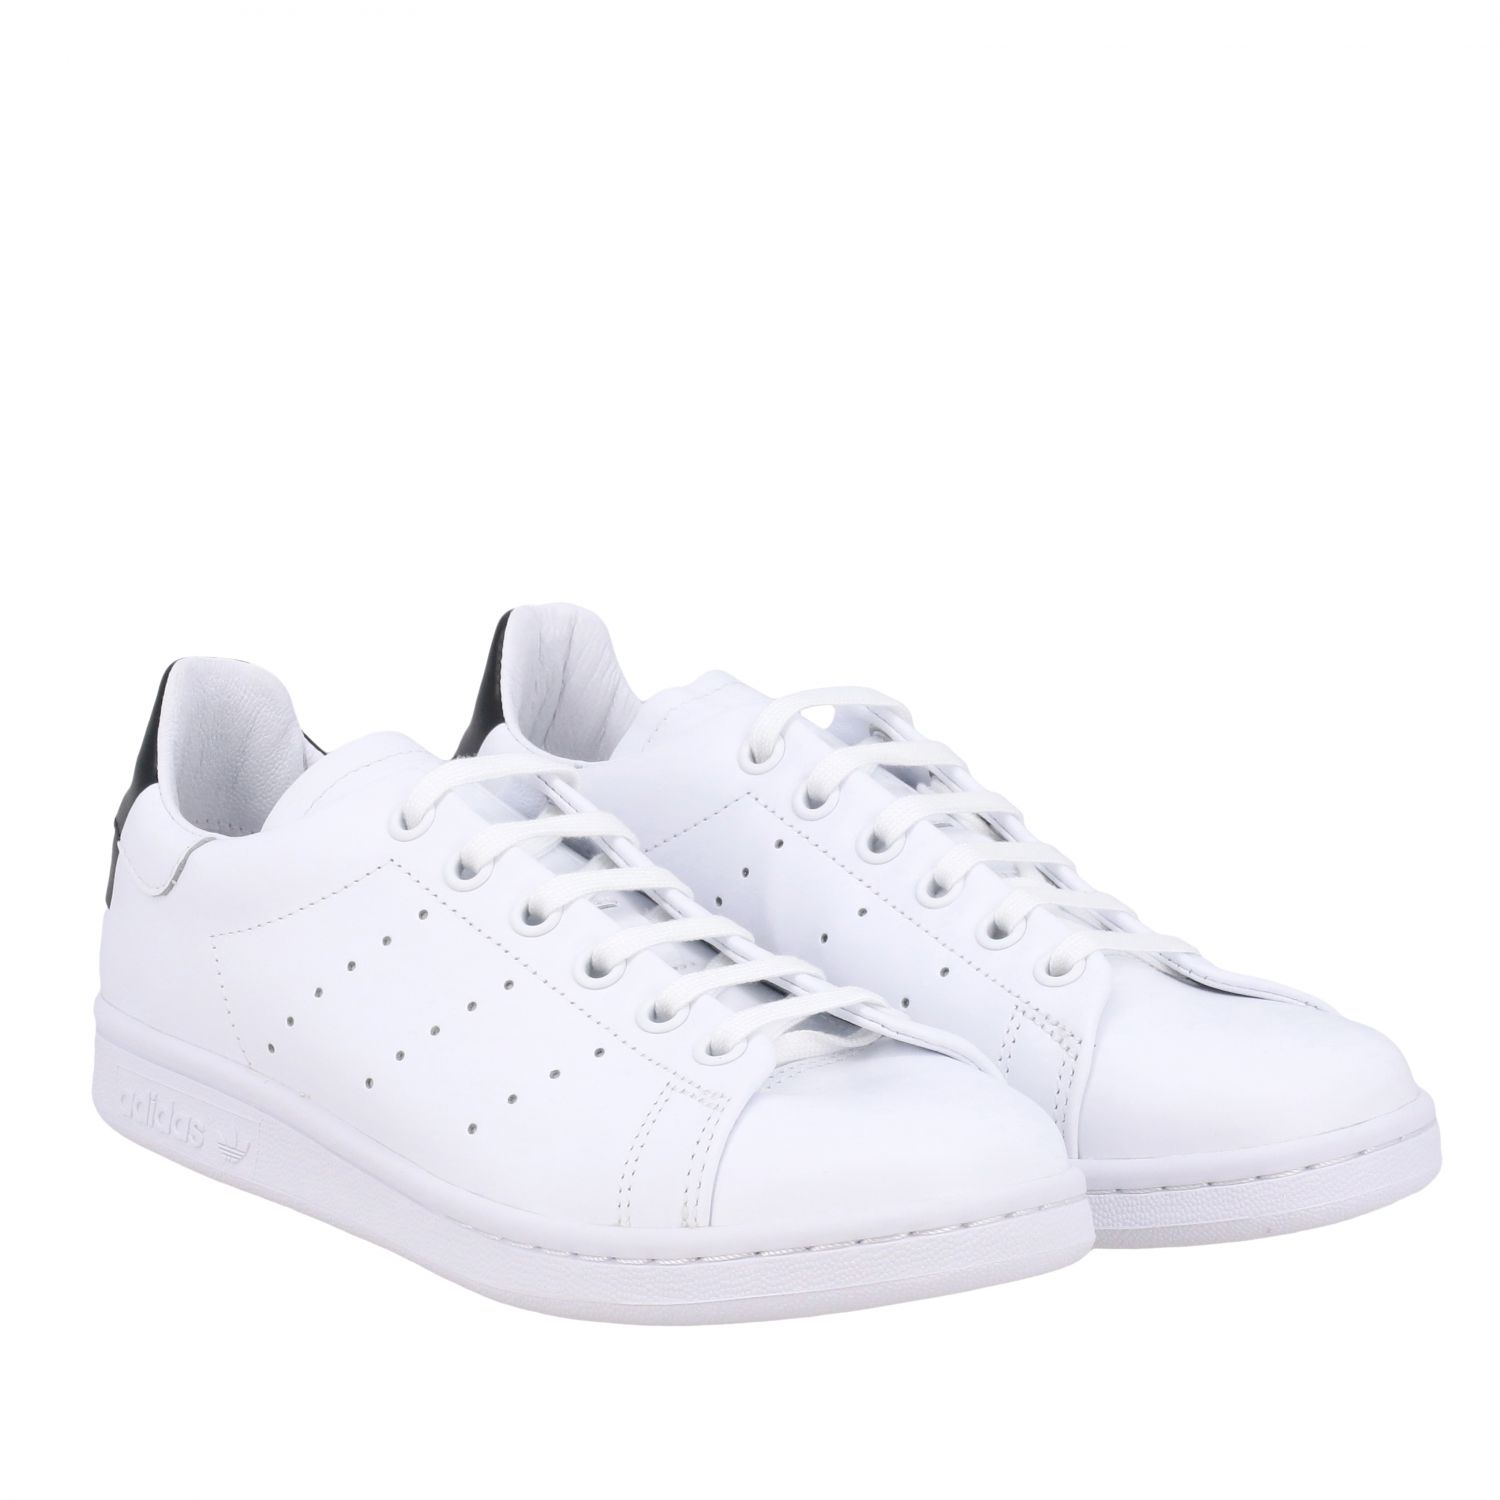 Sneakers Adidas Originals: Shoes women Adidas Originals white 2